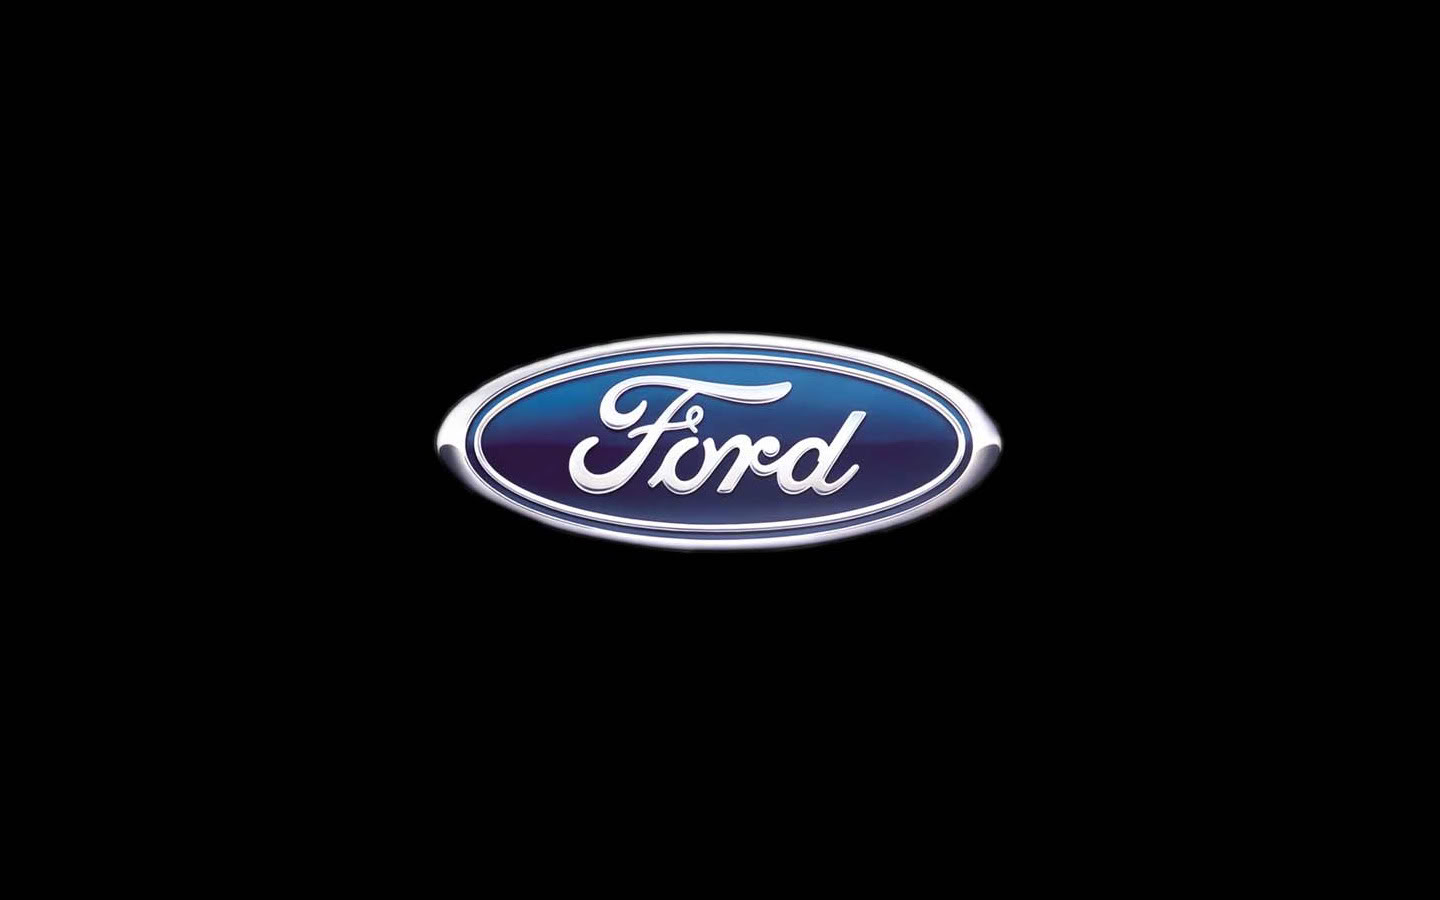 Ford Logo Ford Car Symbol Meaning And History Car Brand